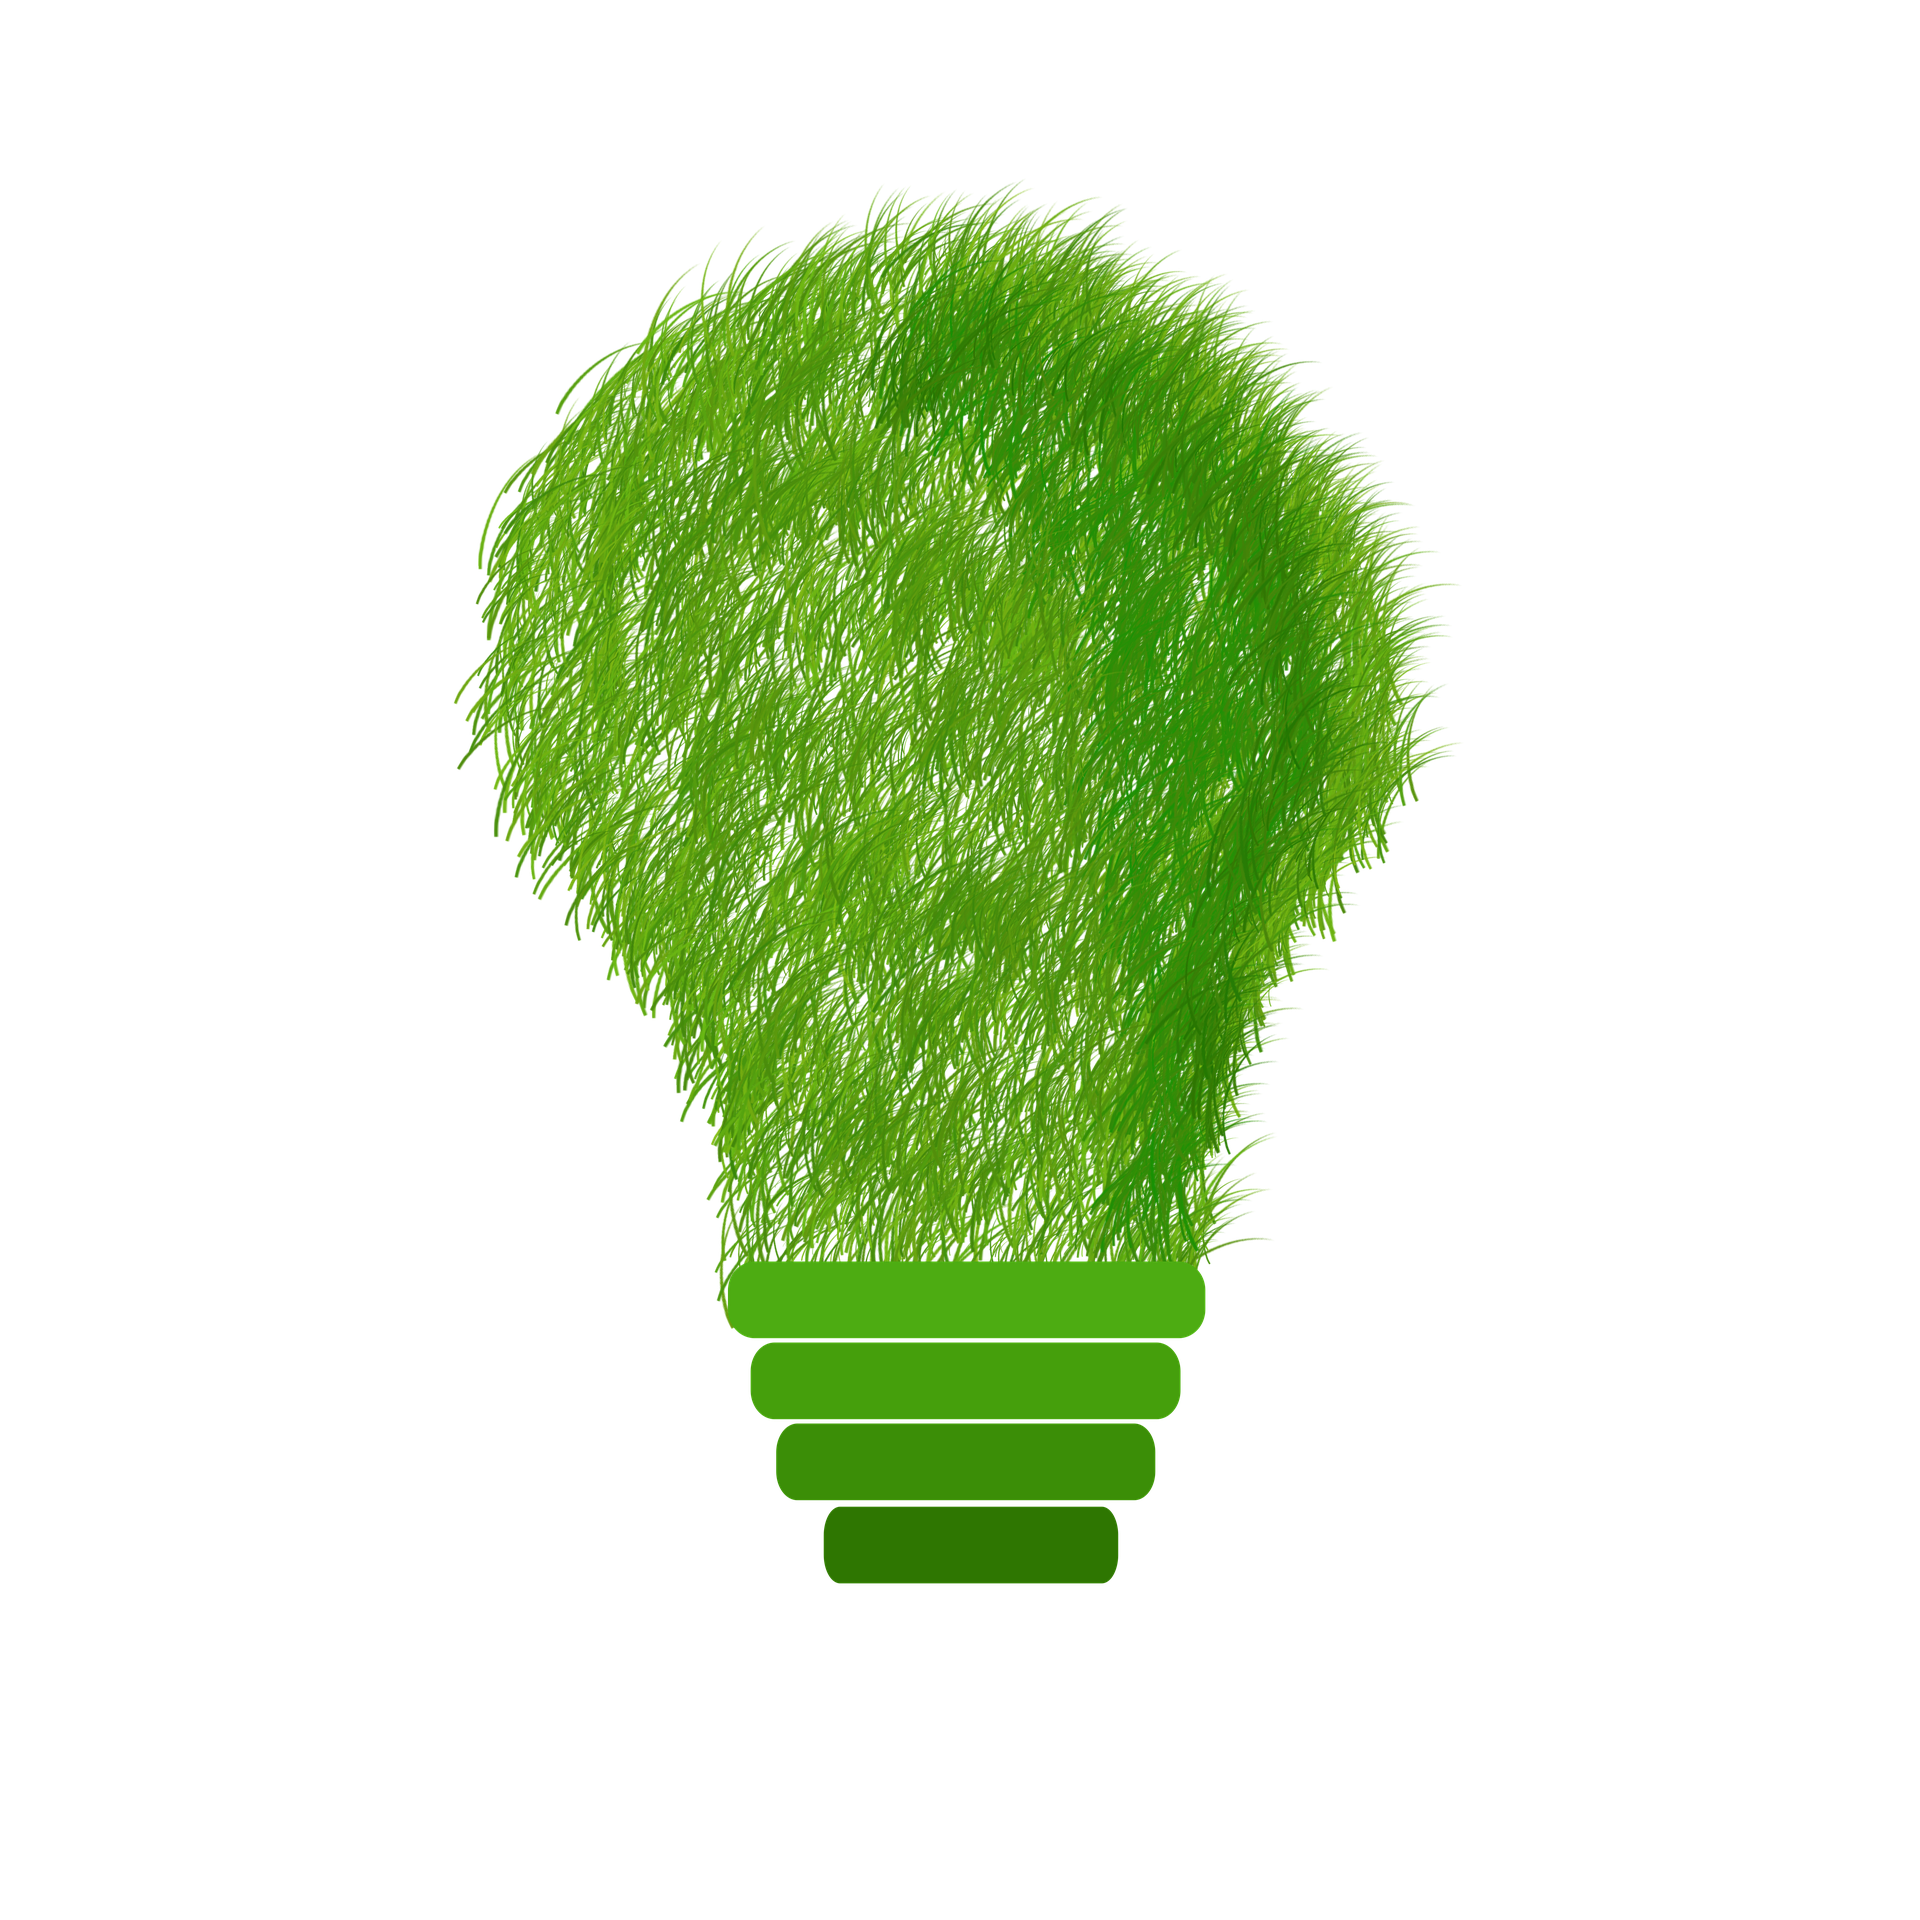 green-1966408_1920.png